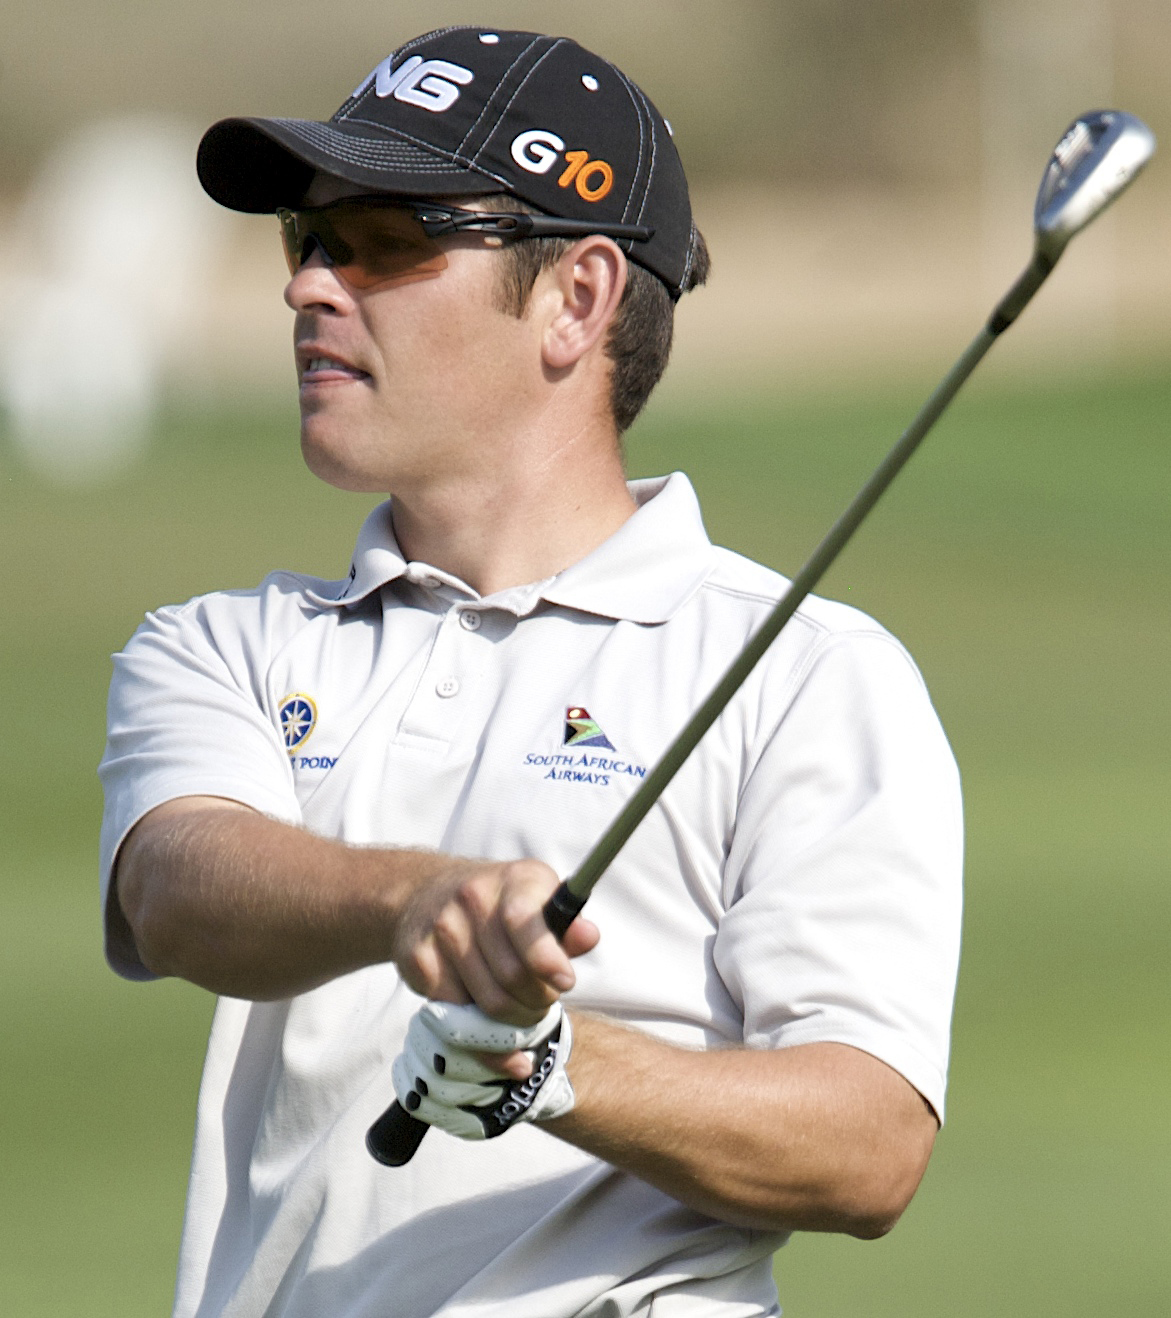 Louis Oosthuizen has a one-stroke lead entering the final round of the Andalucia Open. (File photo)